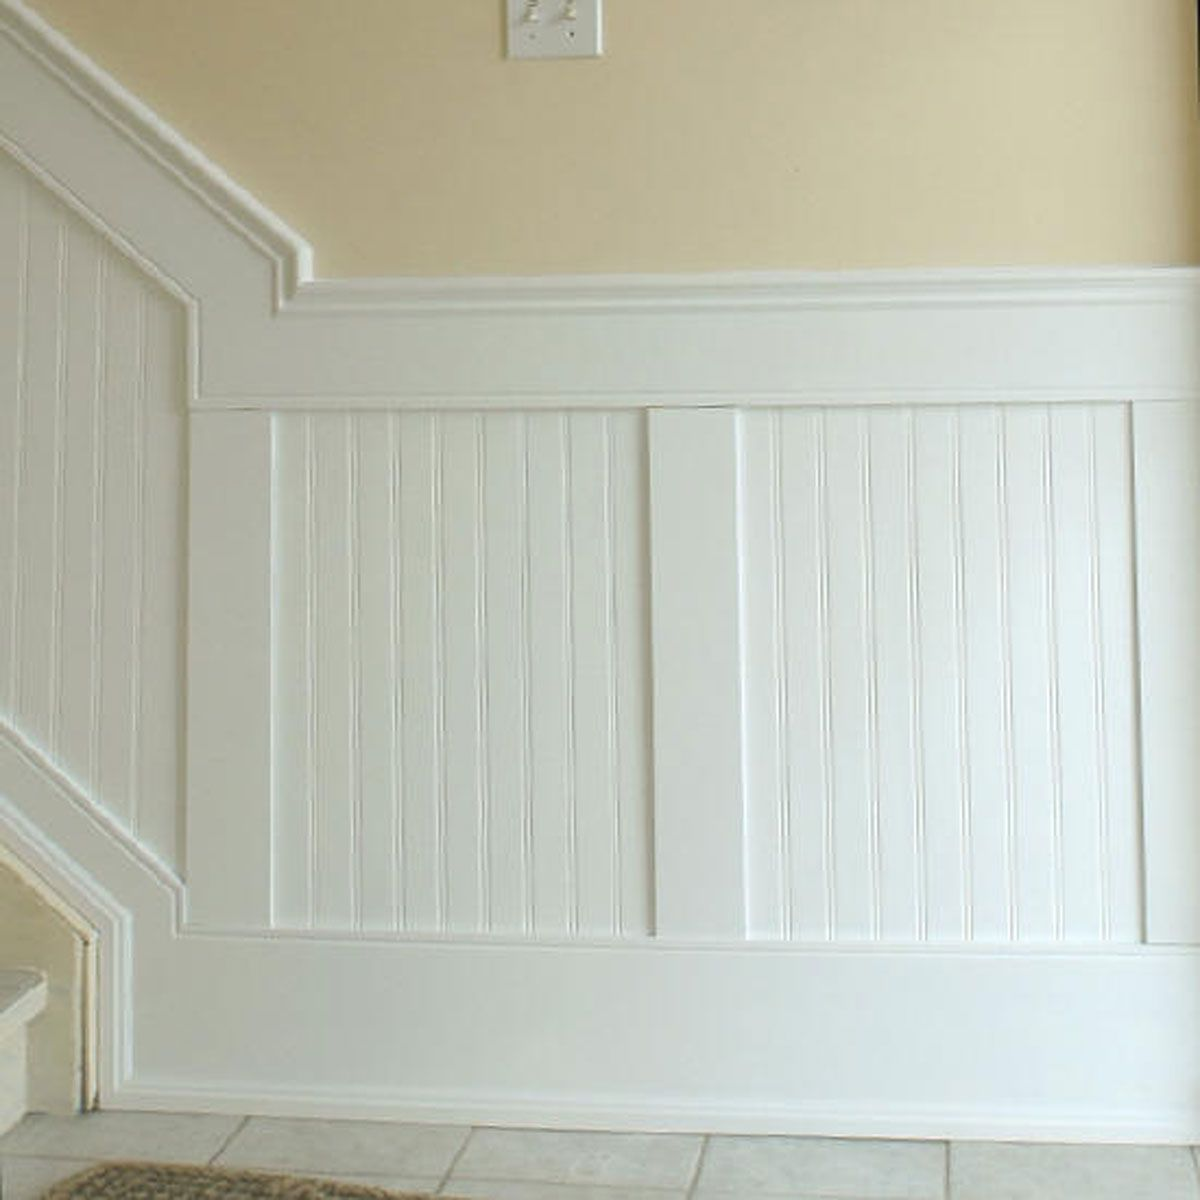 Wainscoting Design Ideas image of diy wainscoting panels design Wainscoting And Crown Molding Just Ugly Paint Colors Wainscotting Pinterest Wainscoting Crowns And Paint